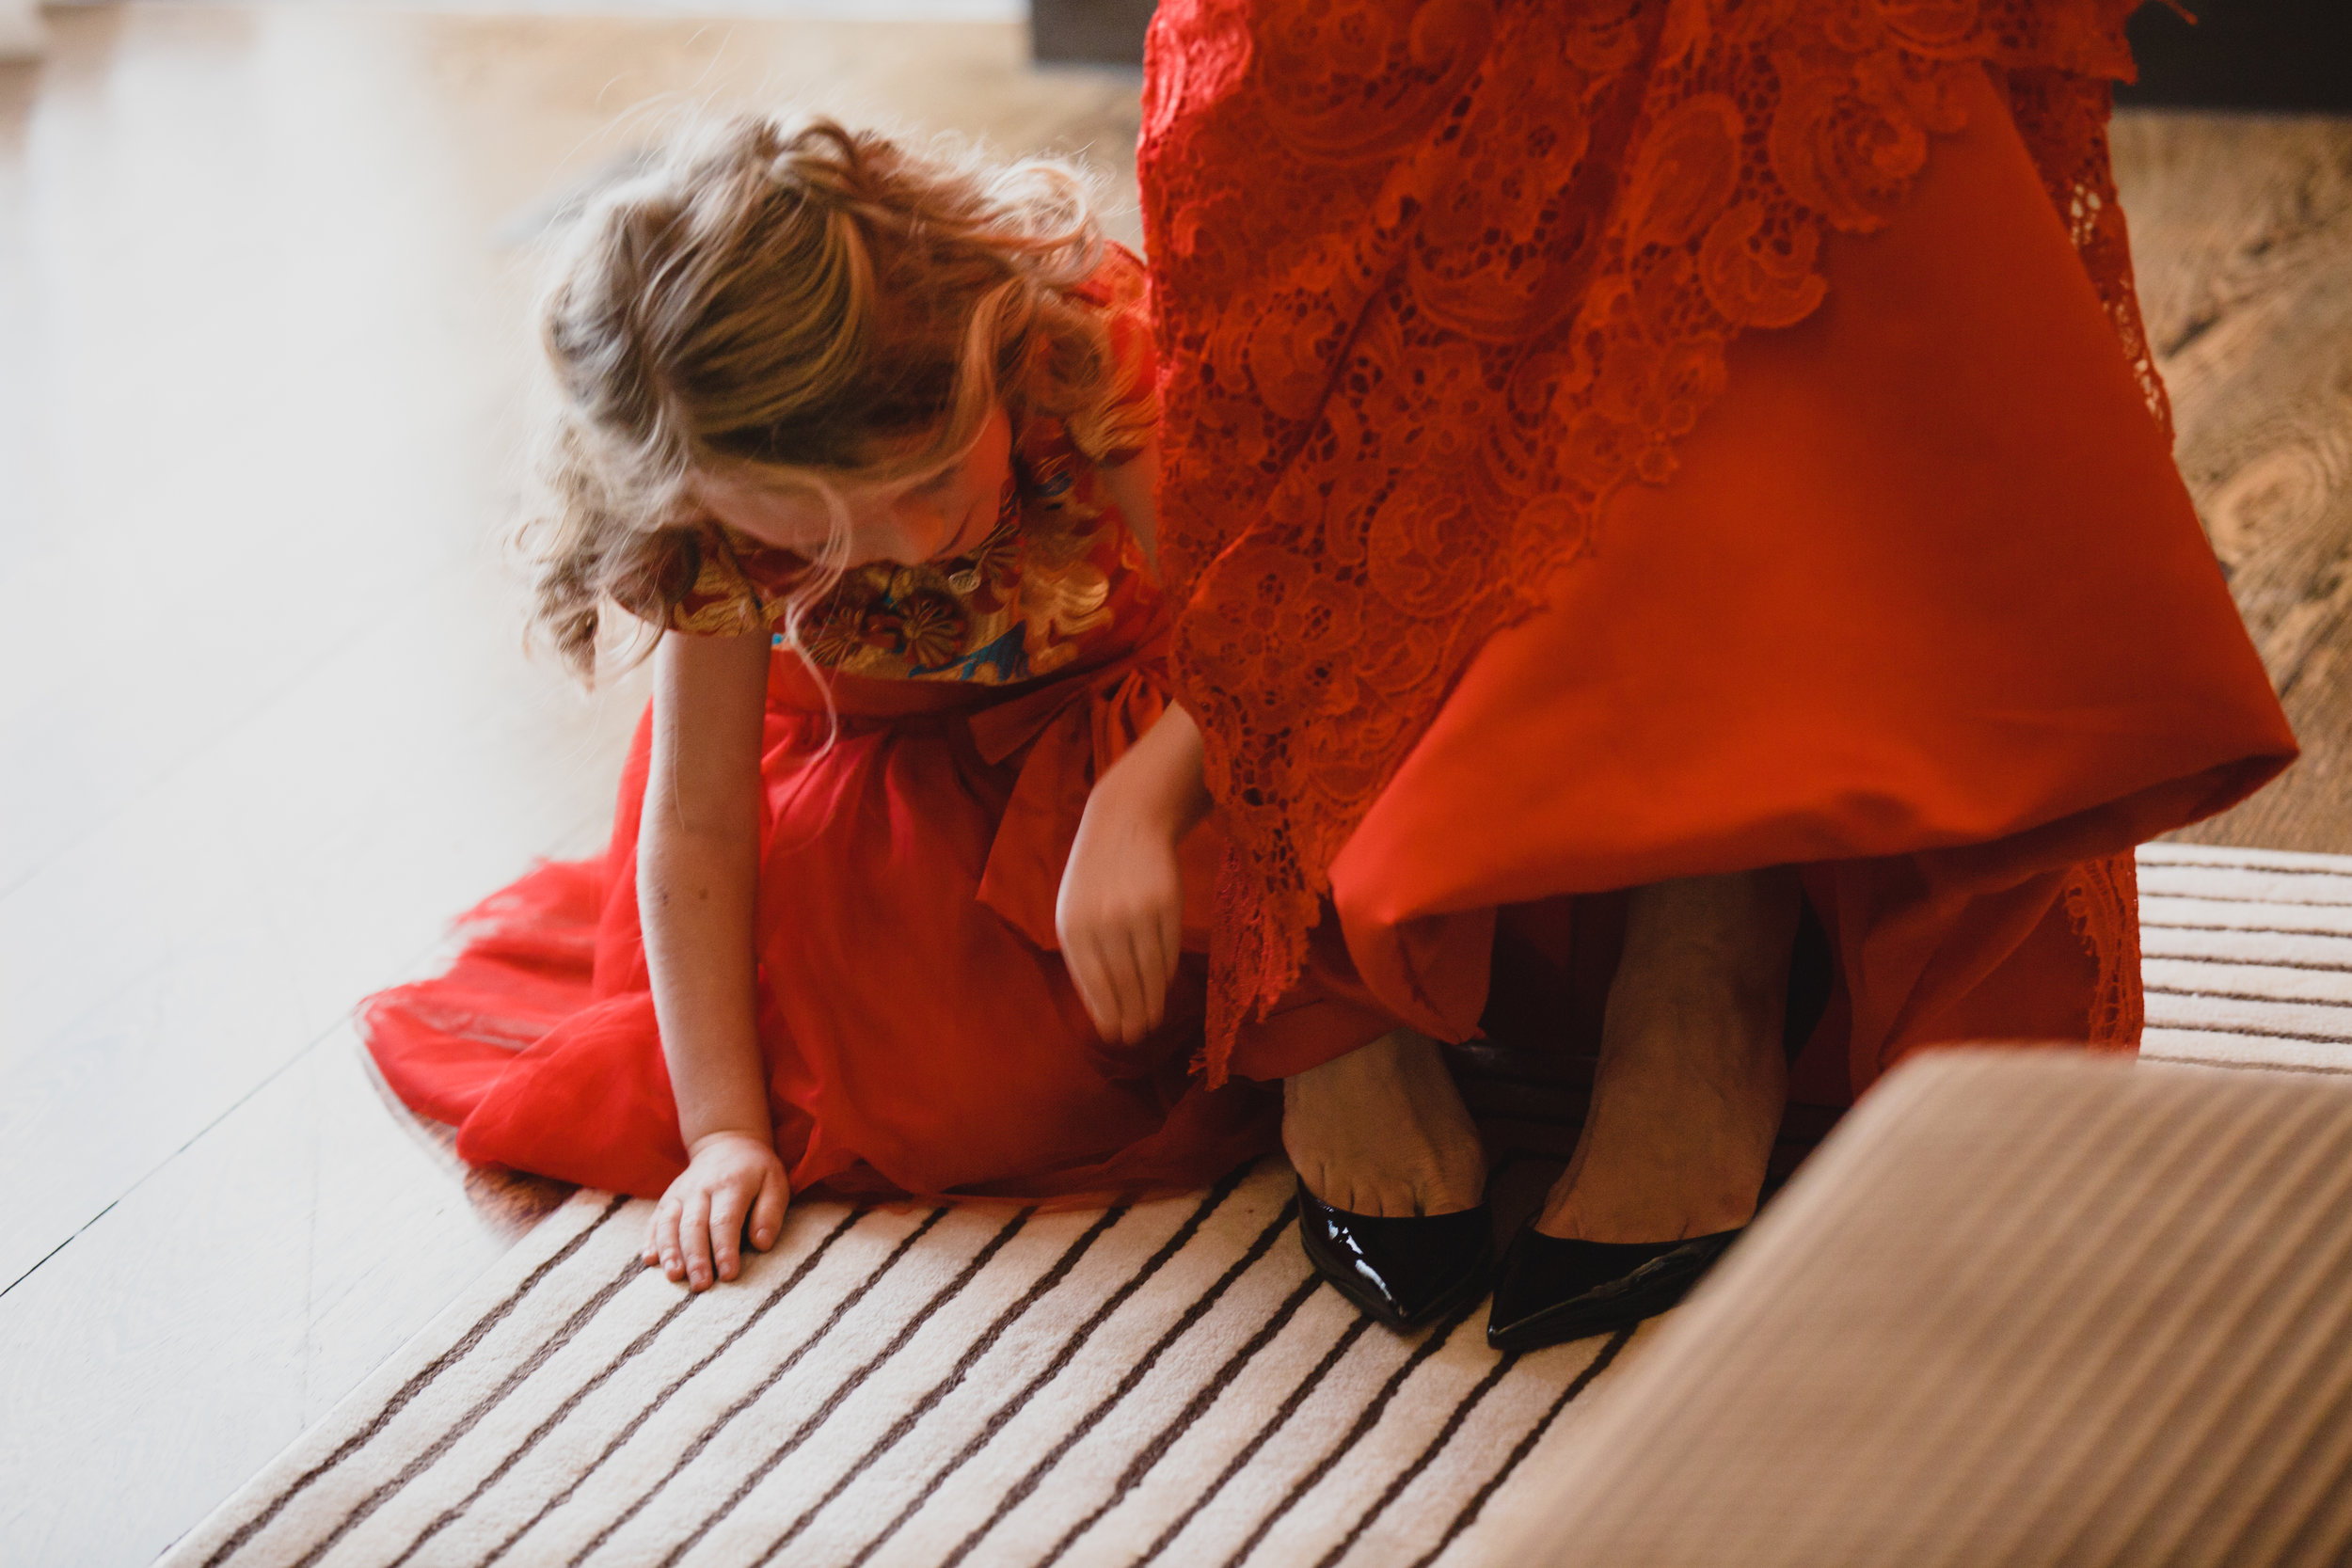 Flower girl helping bride into her black Louboutin shoes.Luxury wedding at the Mandarin Oriental with a color scheme of white, blush, and pops of wine red produced by Las Vegas Wedding Planner Andrea Eppolito with photos by Stephen Salazar Photography.